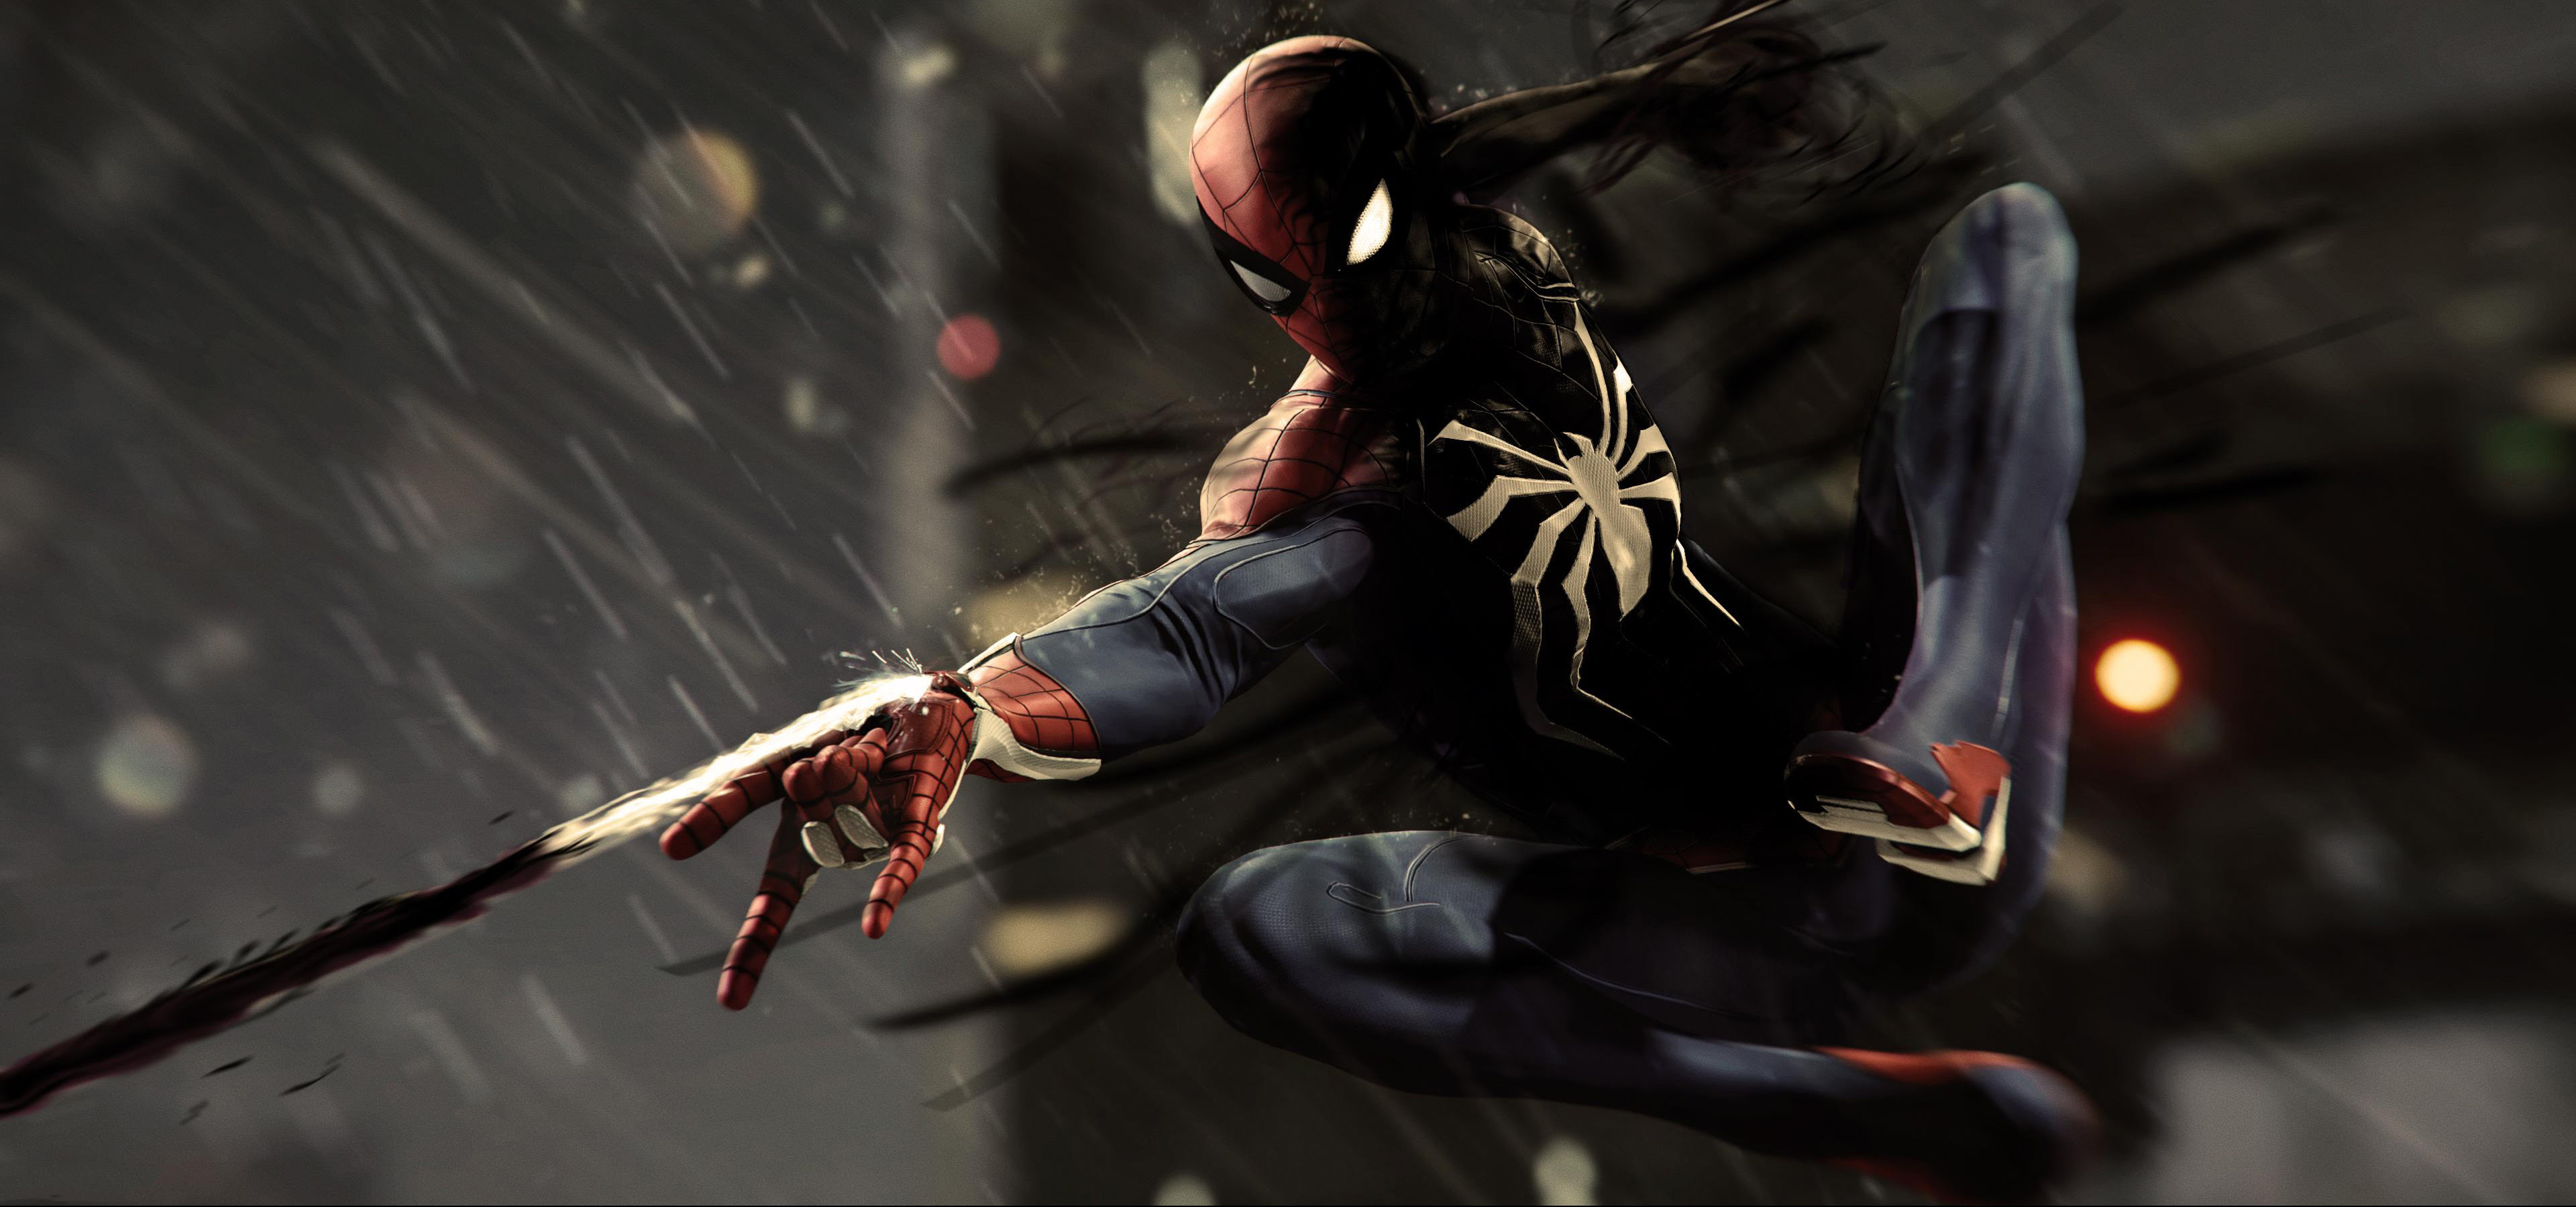 Black Spiderman Ps4 Pro 4k, HD Games, 4k Wallpapers, Images, Backgrounds, Photos and Pictures